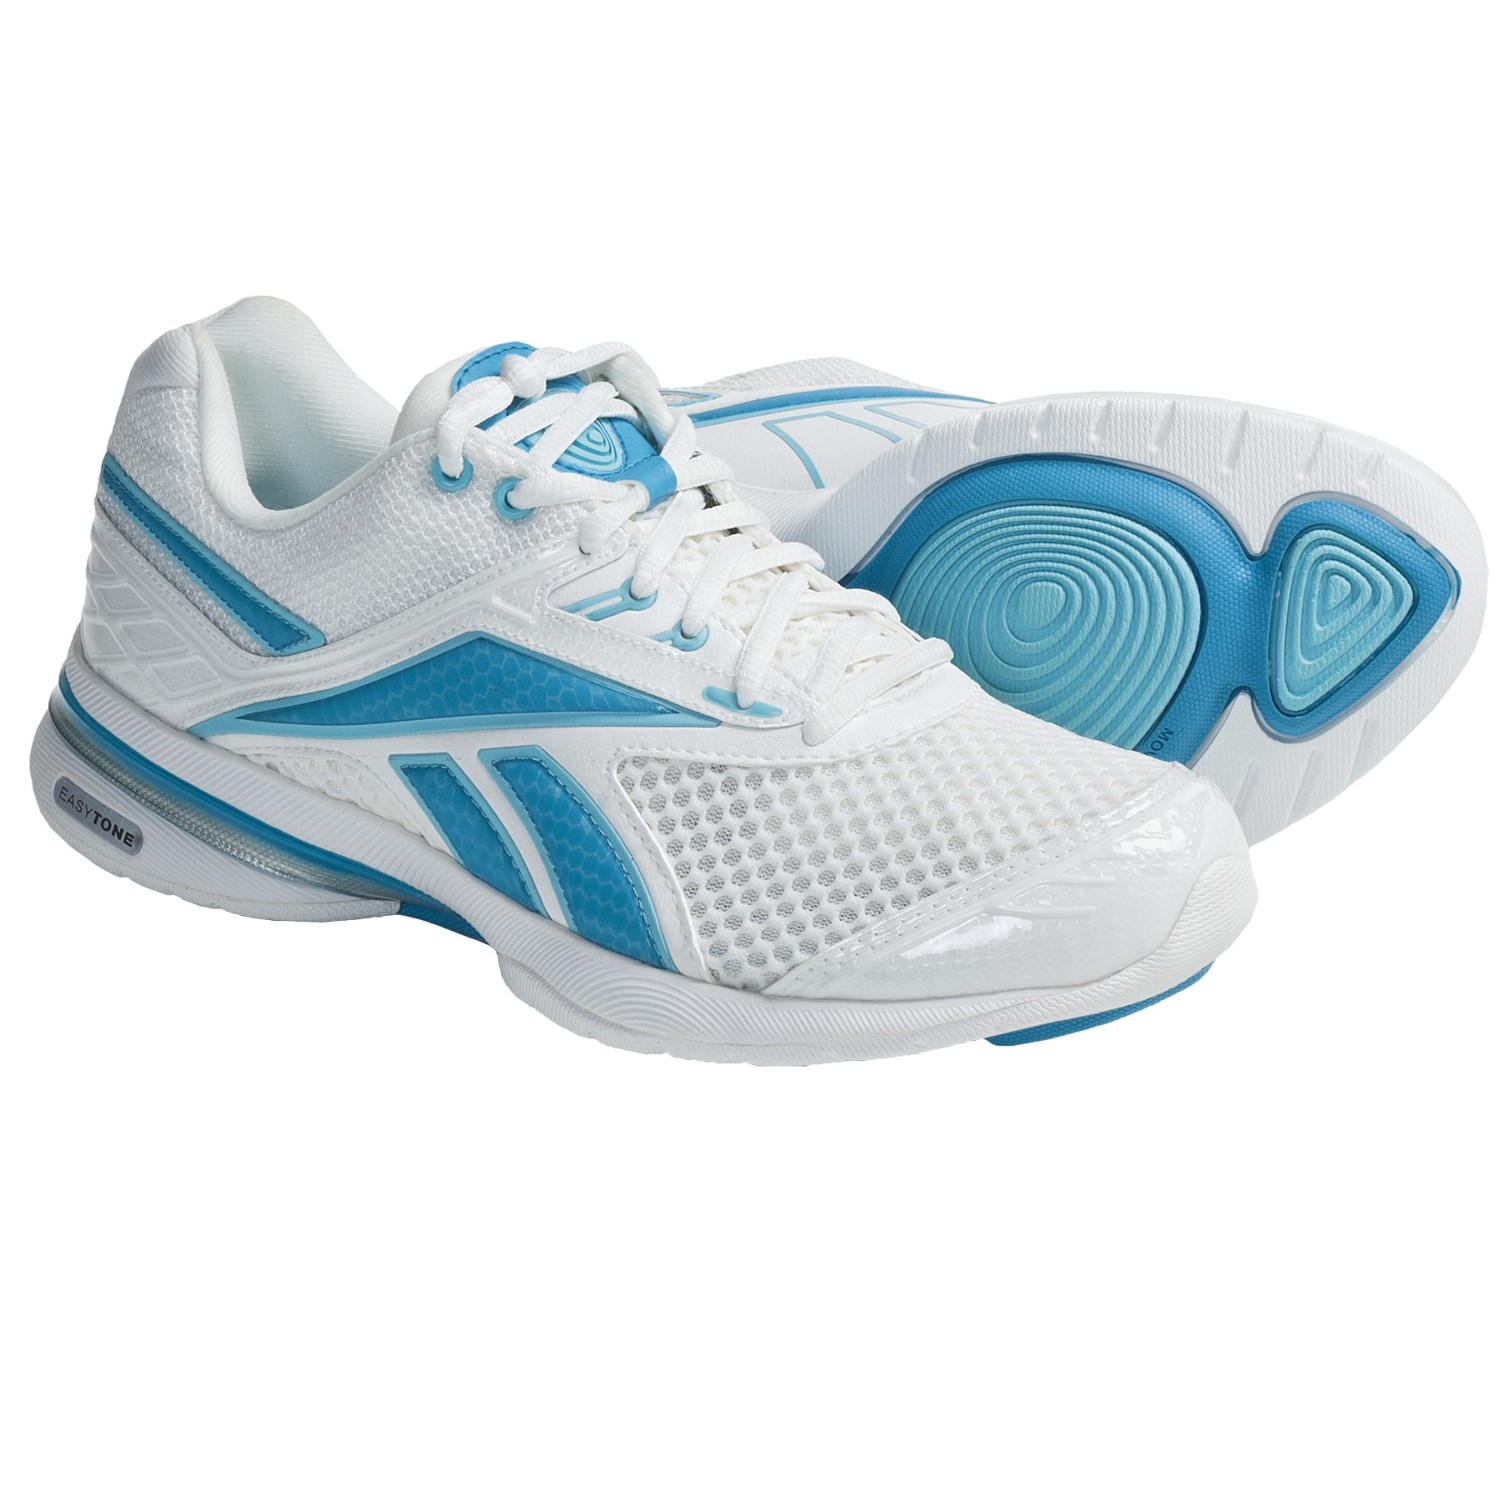 Reebok ReeAttack Walking Shoes (For Women) 4847A - Save 35%